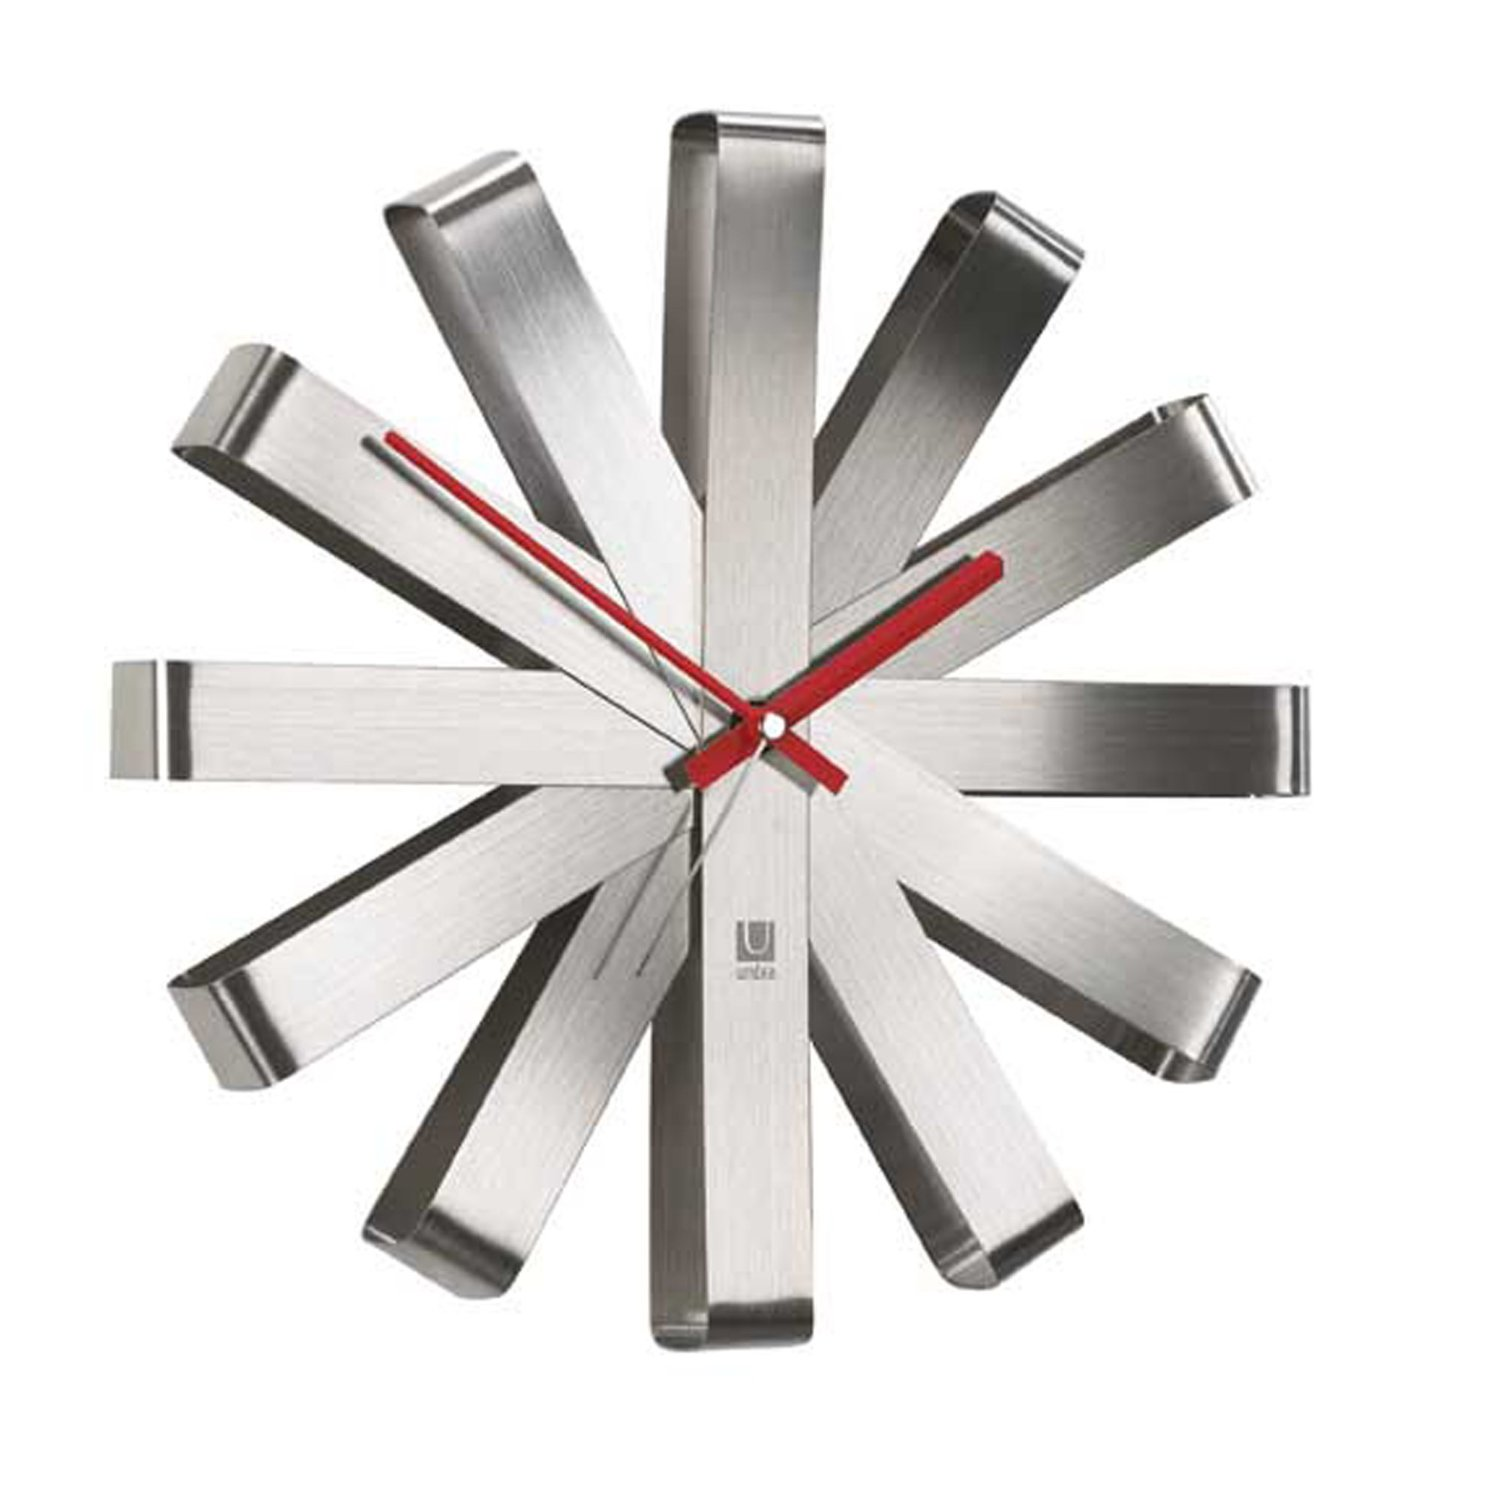 Amusing Design Of The Wall Clocks Ideas With Silver Color No Number Added